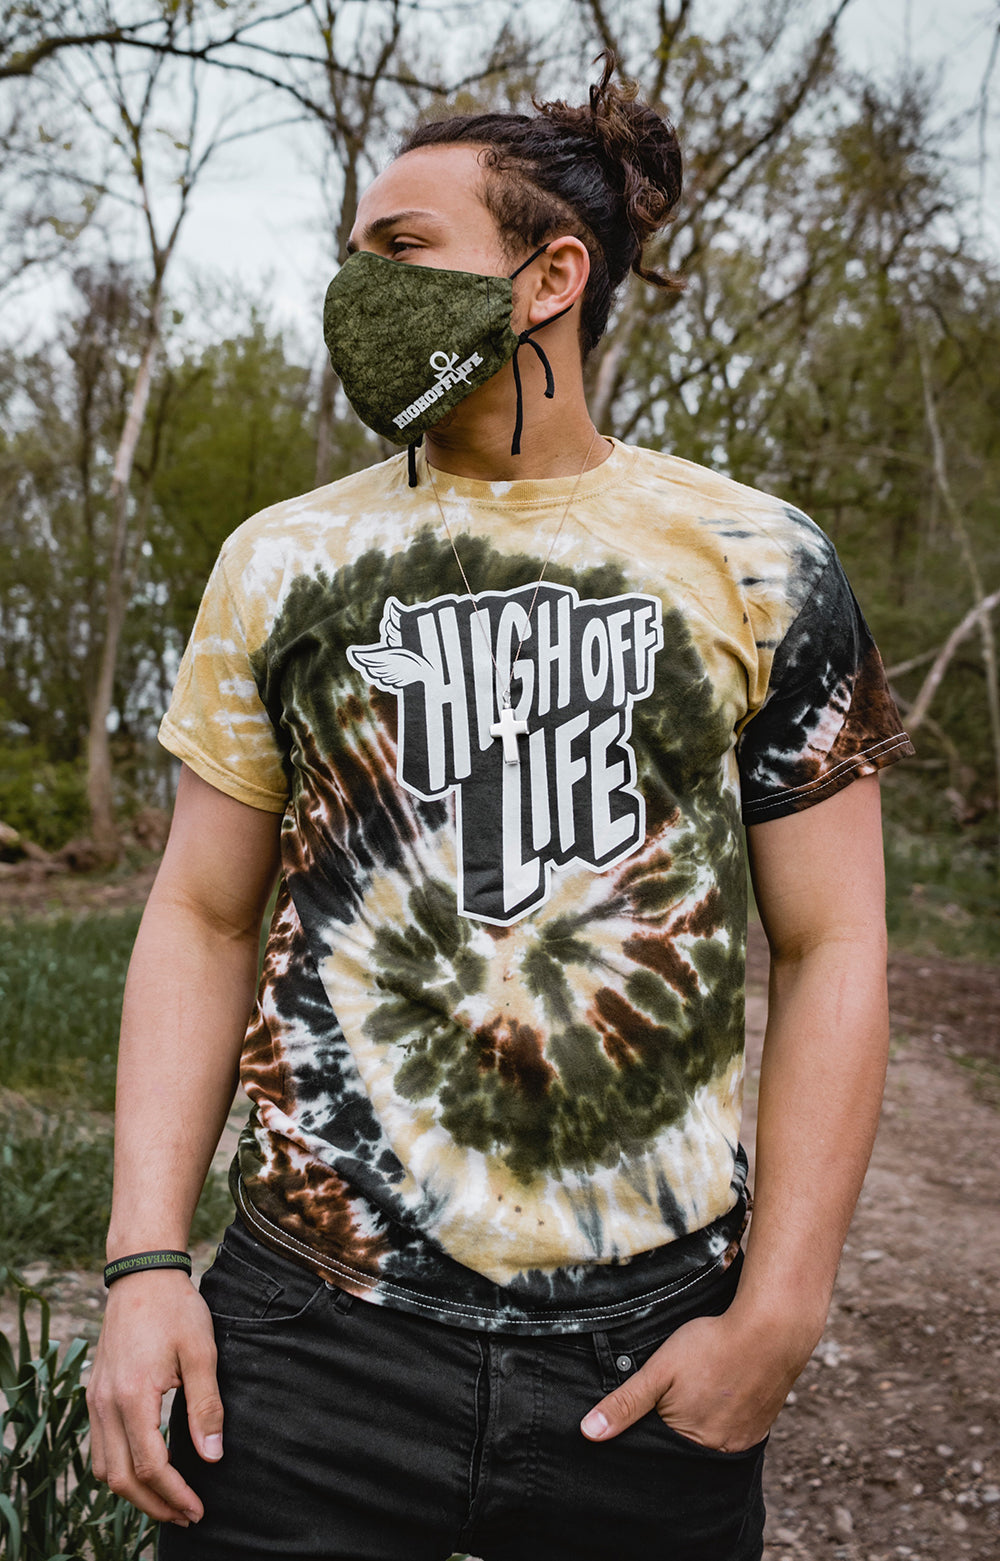 High Off Life T-Shirt (Camo Swirl Tie-Dye)